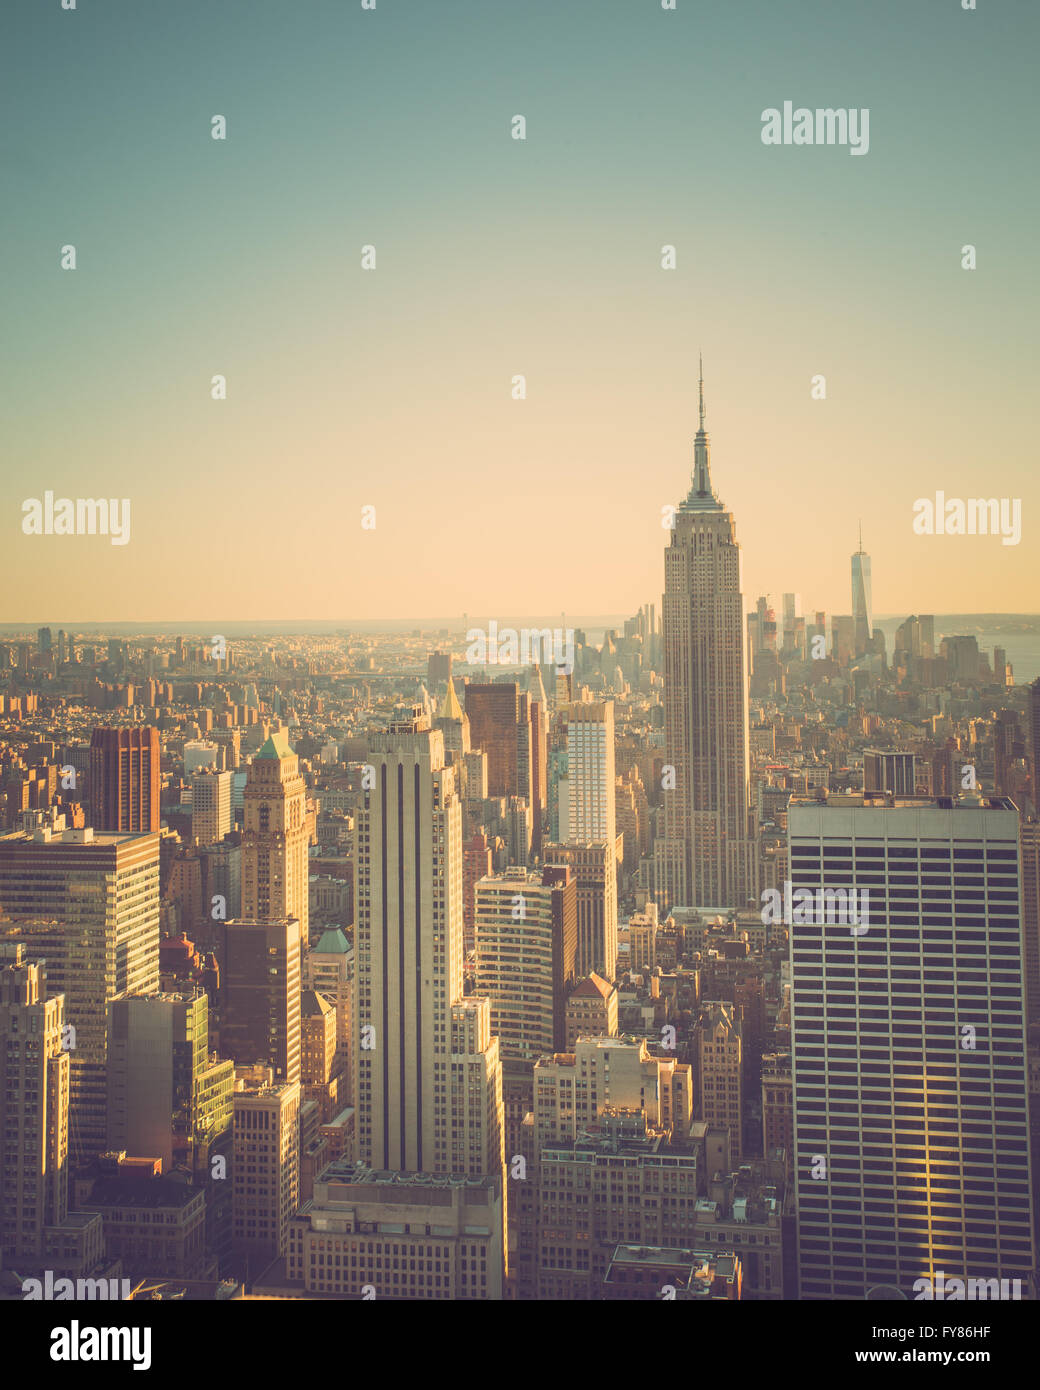 Vue sur la ville de New York à Manhattan au coucher du soleil avec vintage tone et Empire State Building Photo Stock